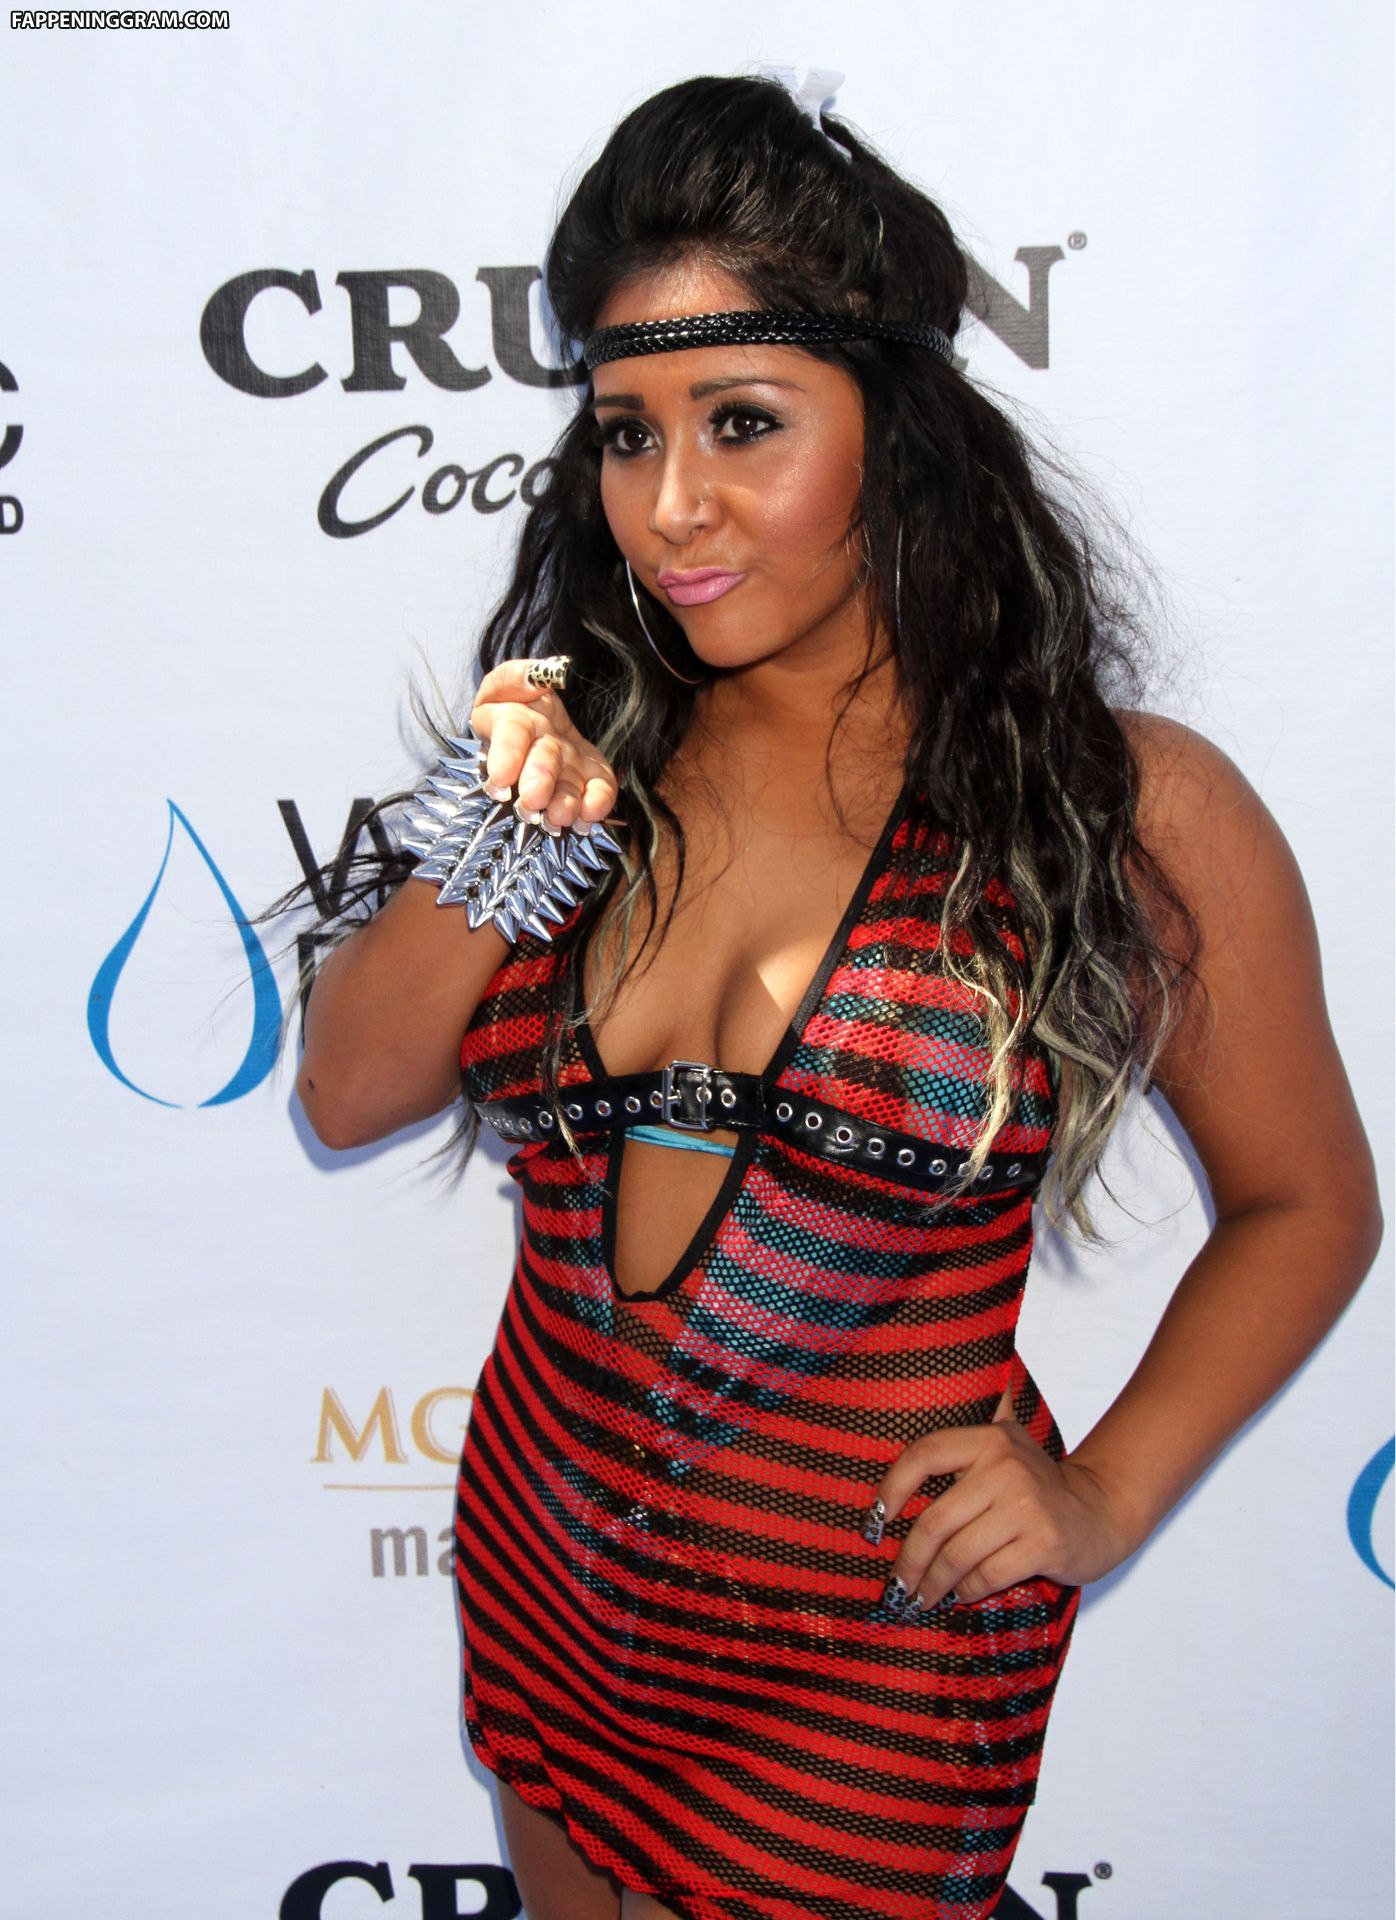 Snooki Nude Photos: Allegedly, Disgustingly Real - The